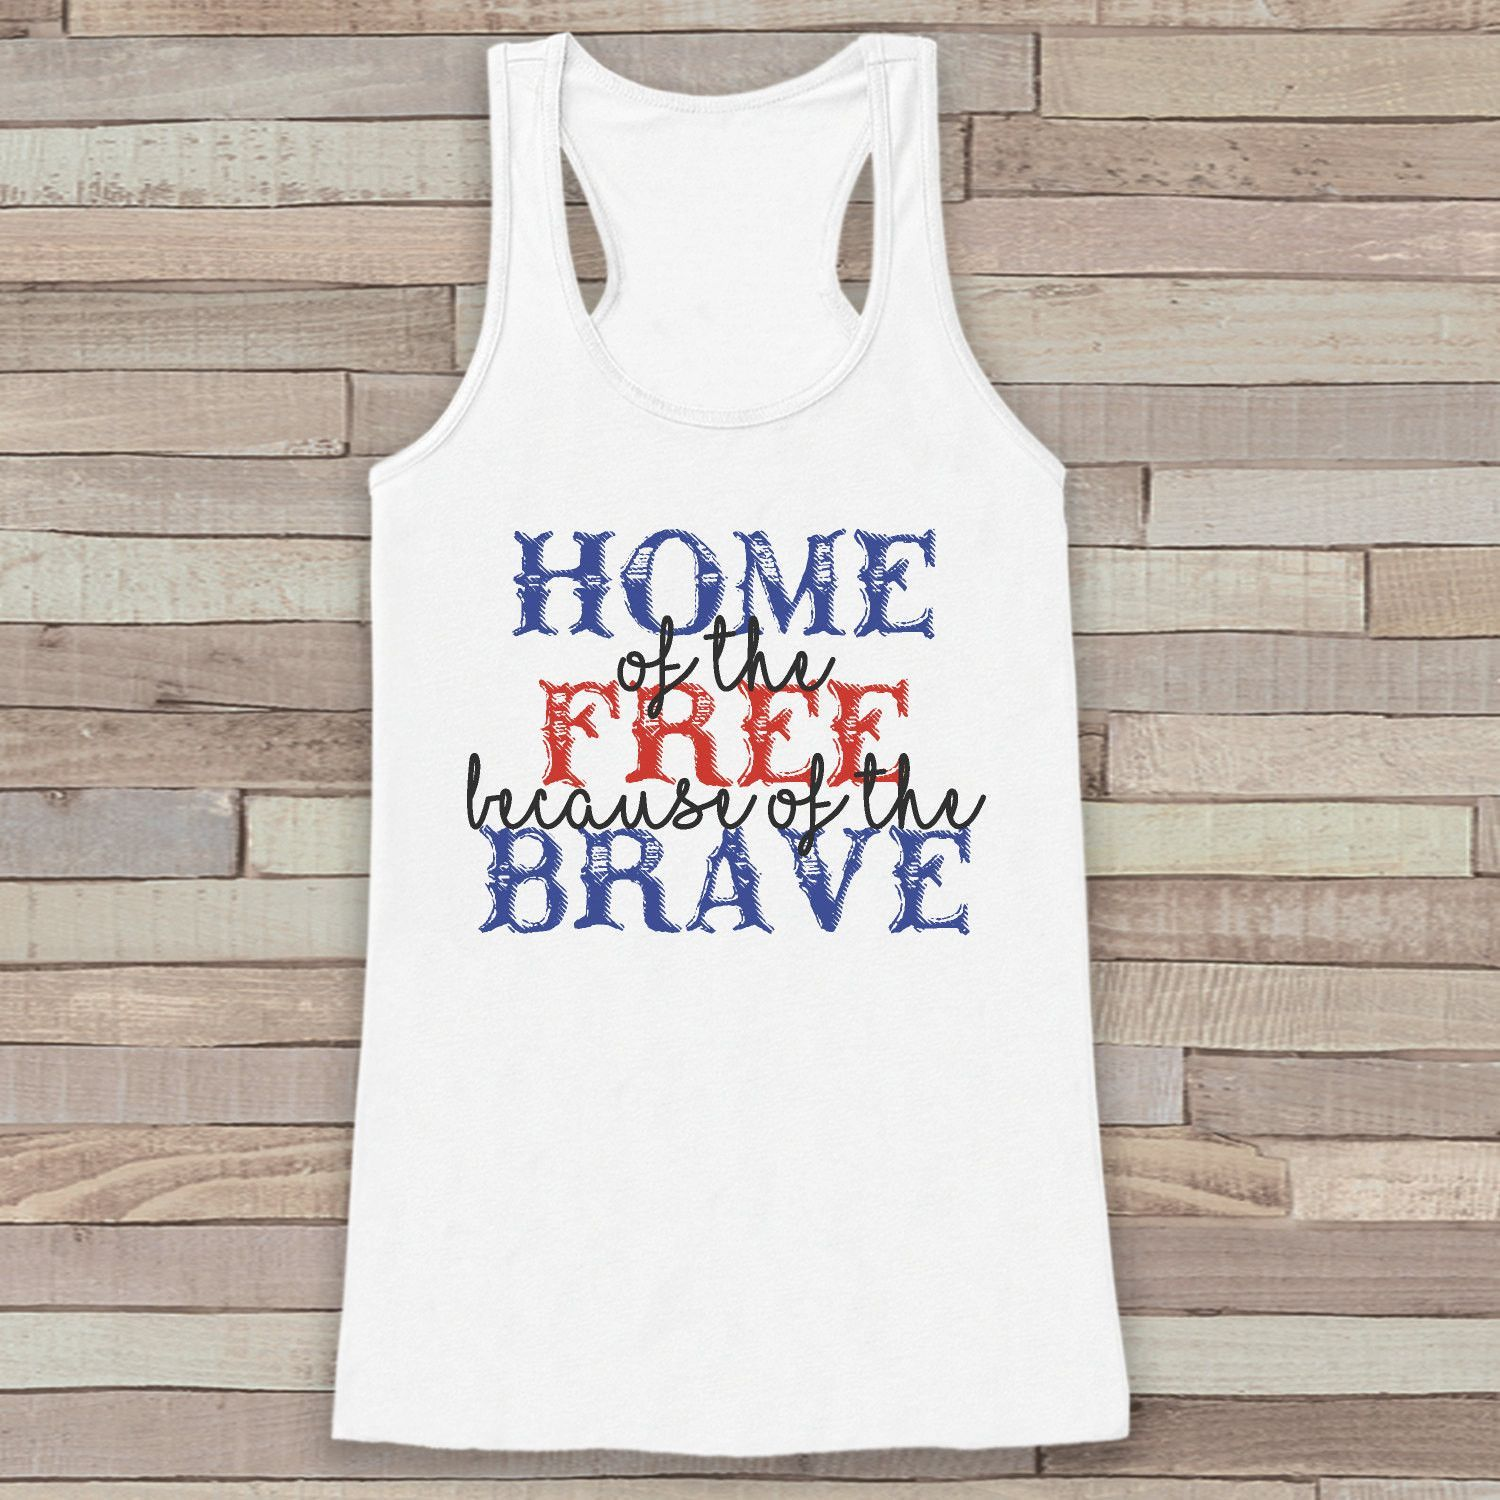 4th of July Tank Top - Home of the Free Because of the Brave - Women's